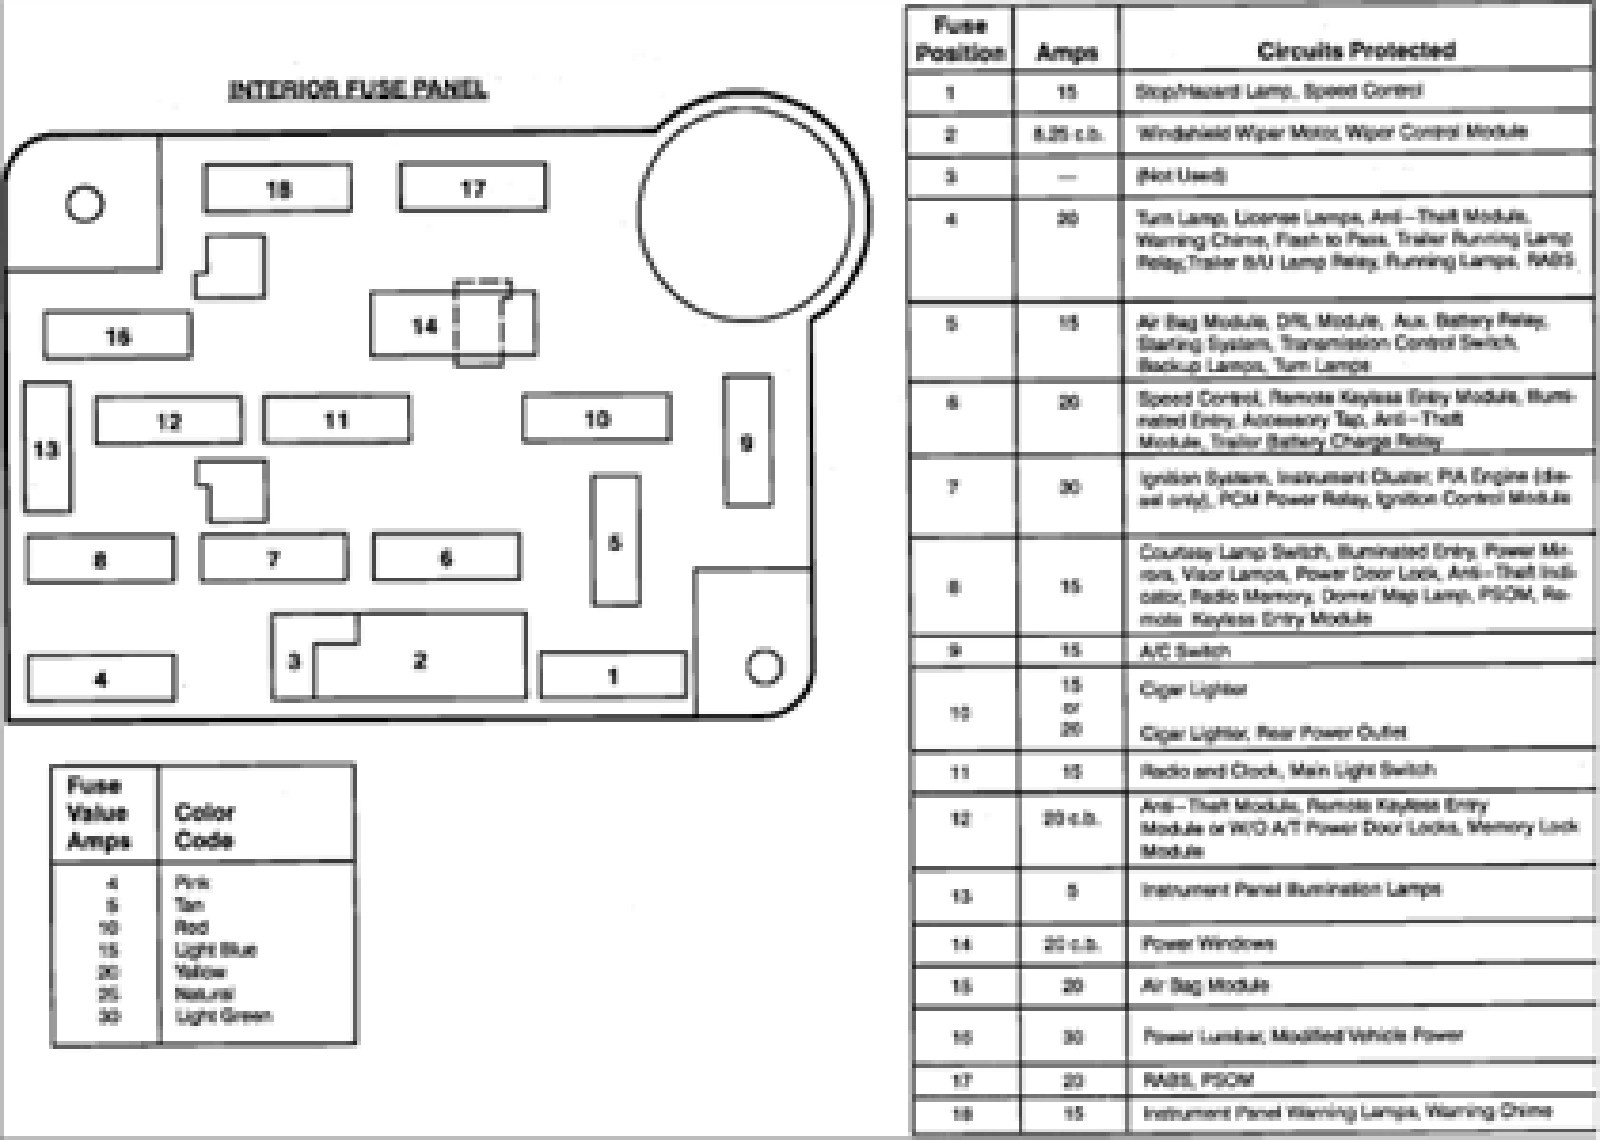 hight resolution of 1997 ford f150 fuse panel diagram wiring diagram blogs 2002 ford explorer fuse diagram 1997 ford fuse diagram